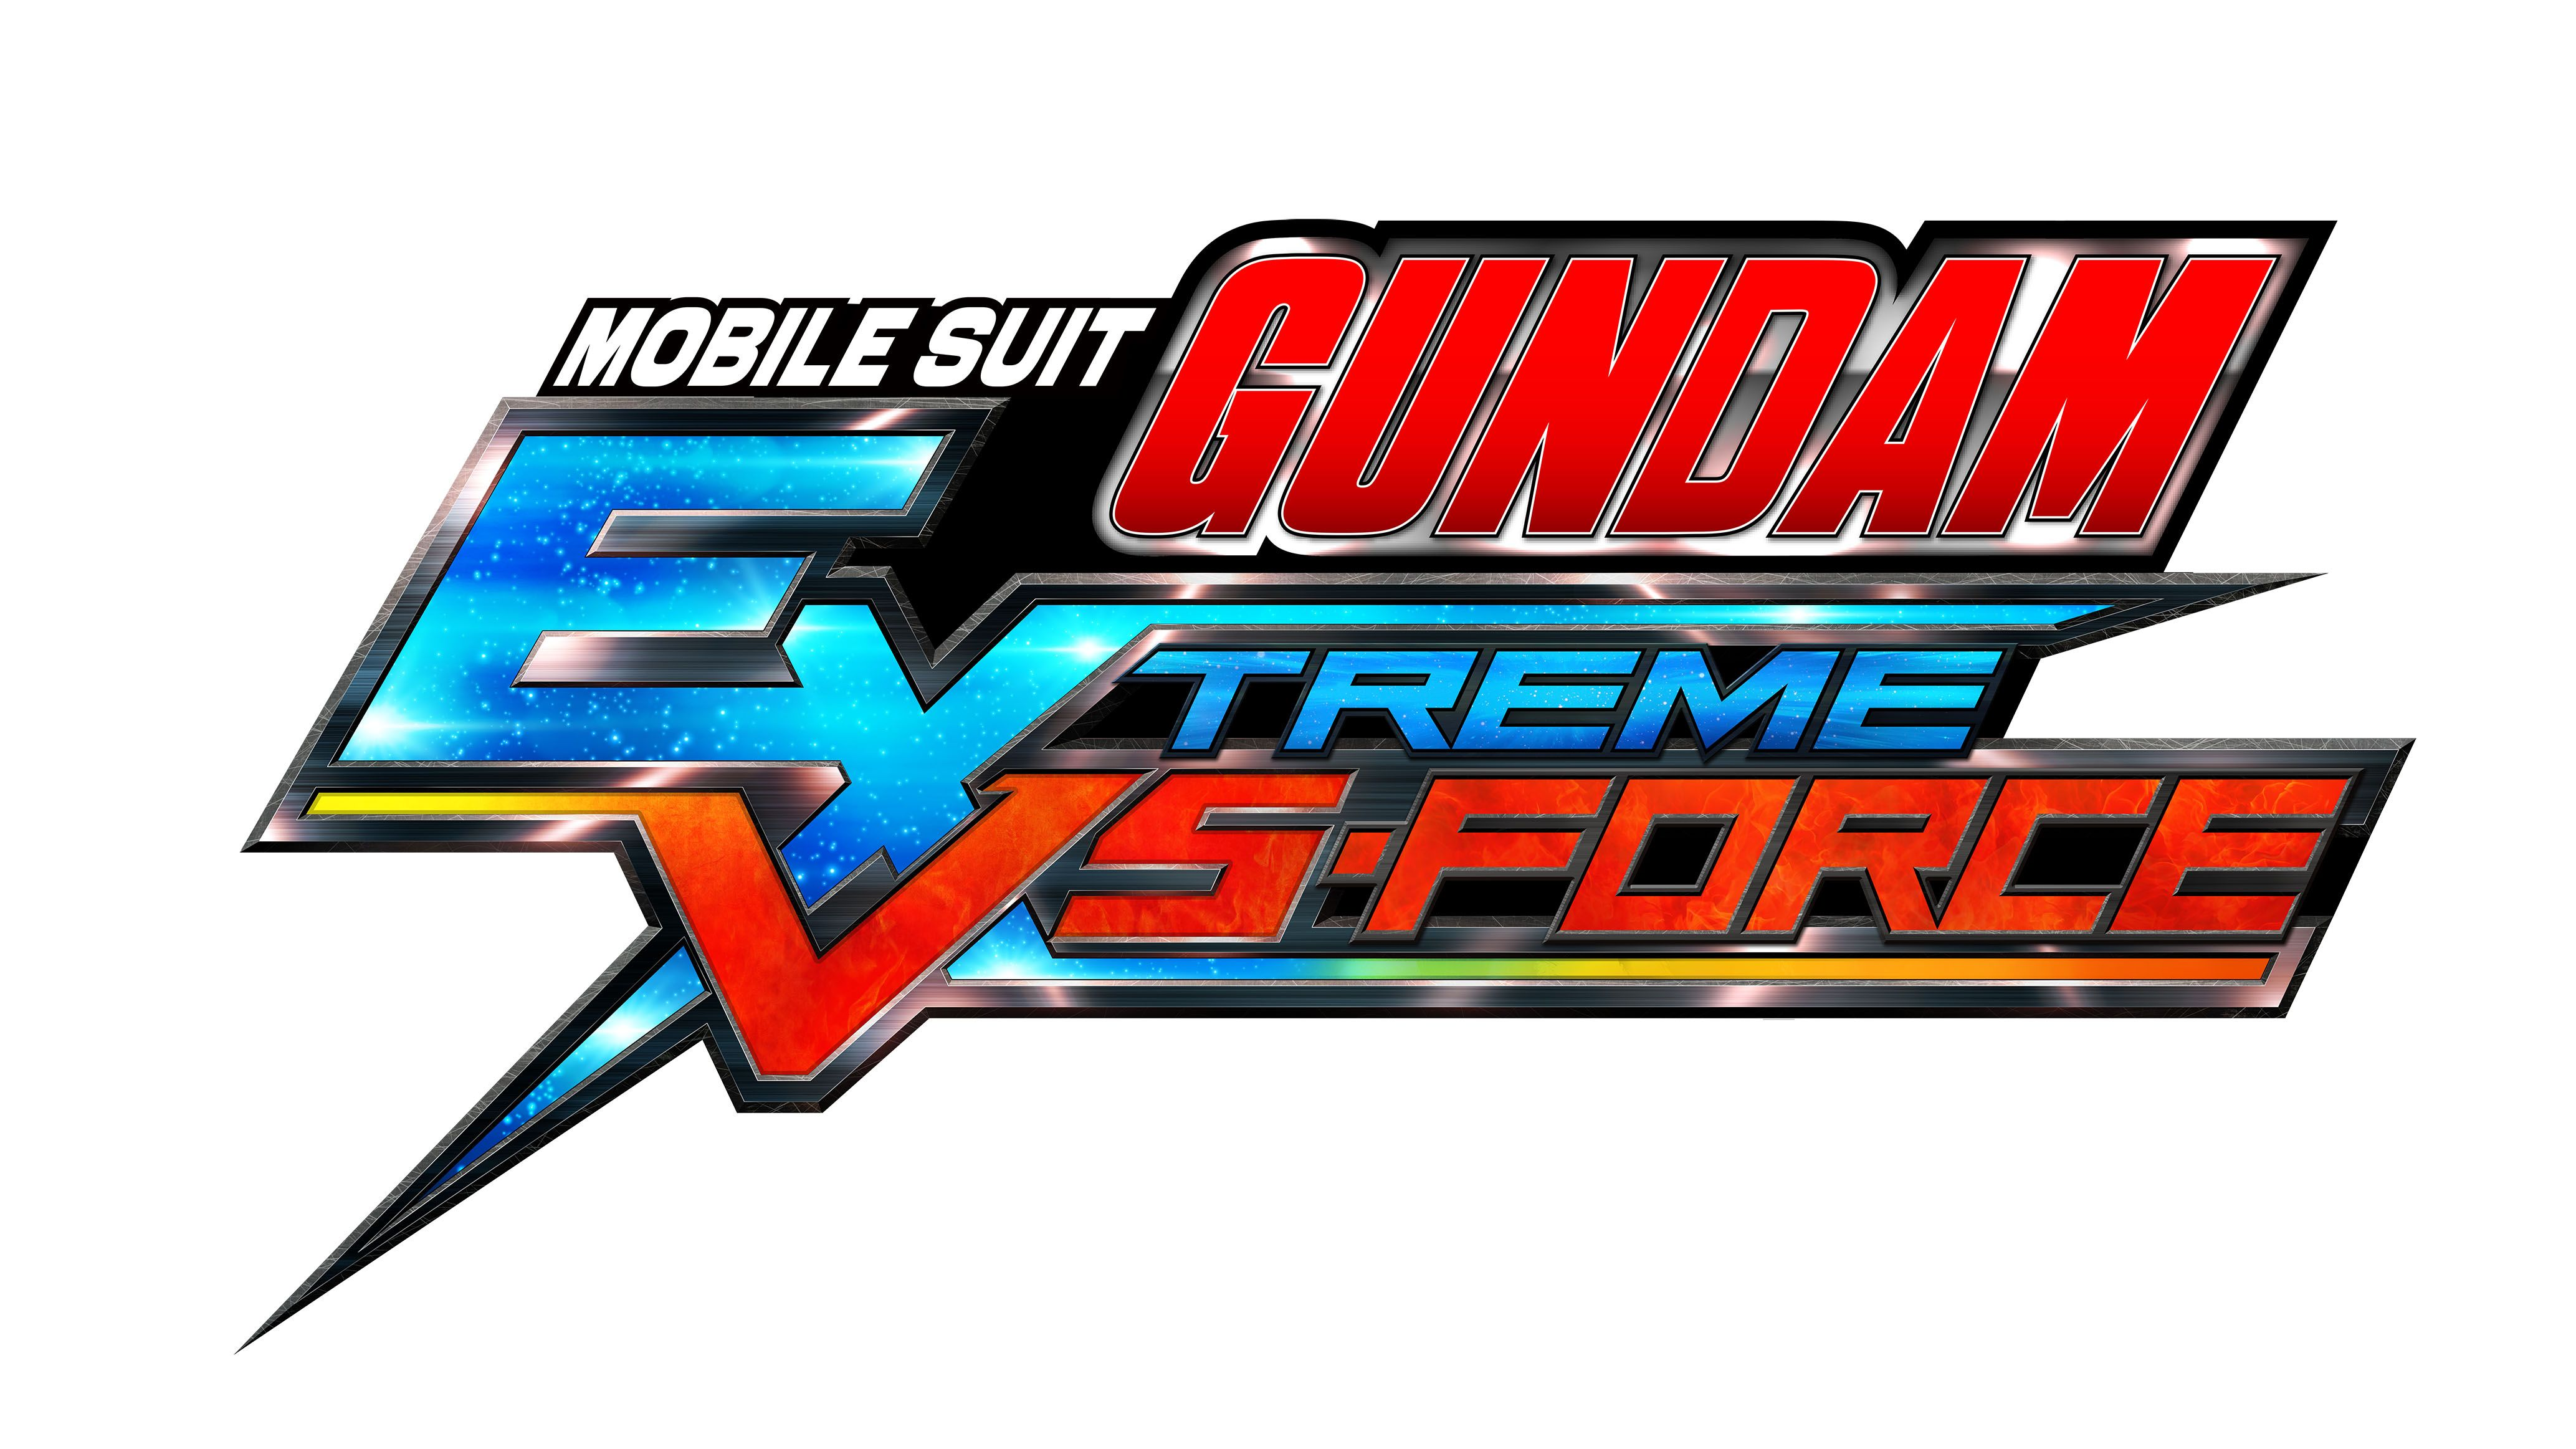 English ver. of Mobile Suit Gundam Extreme Vs. Force (PS